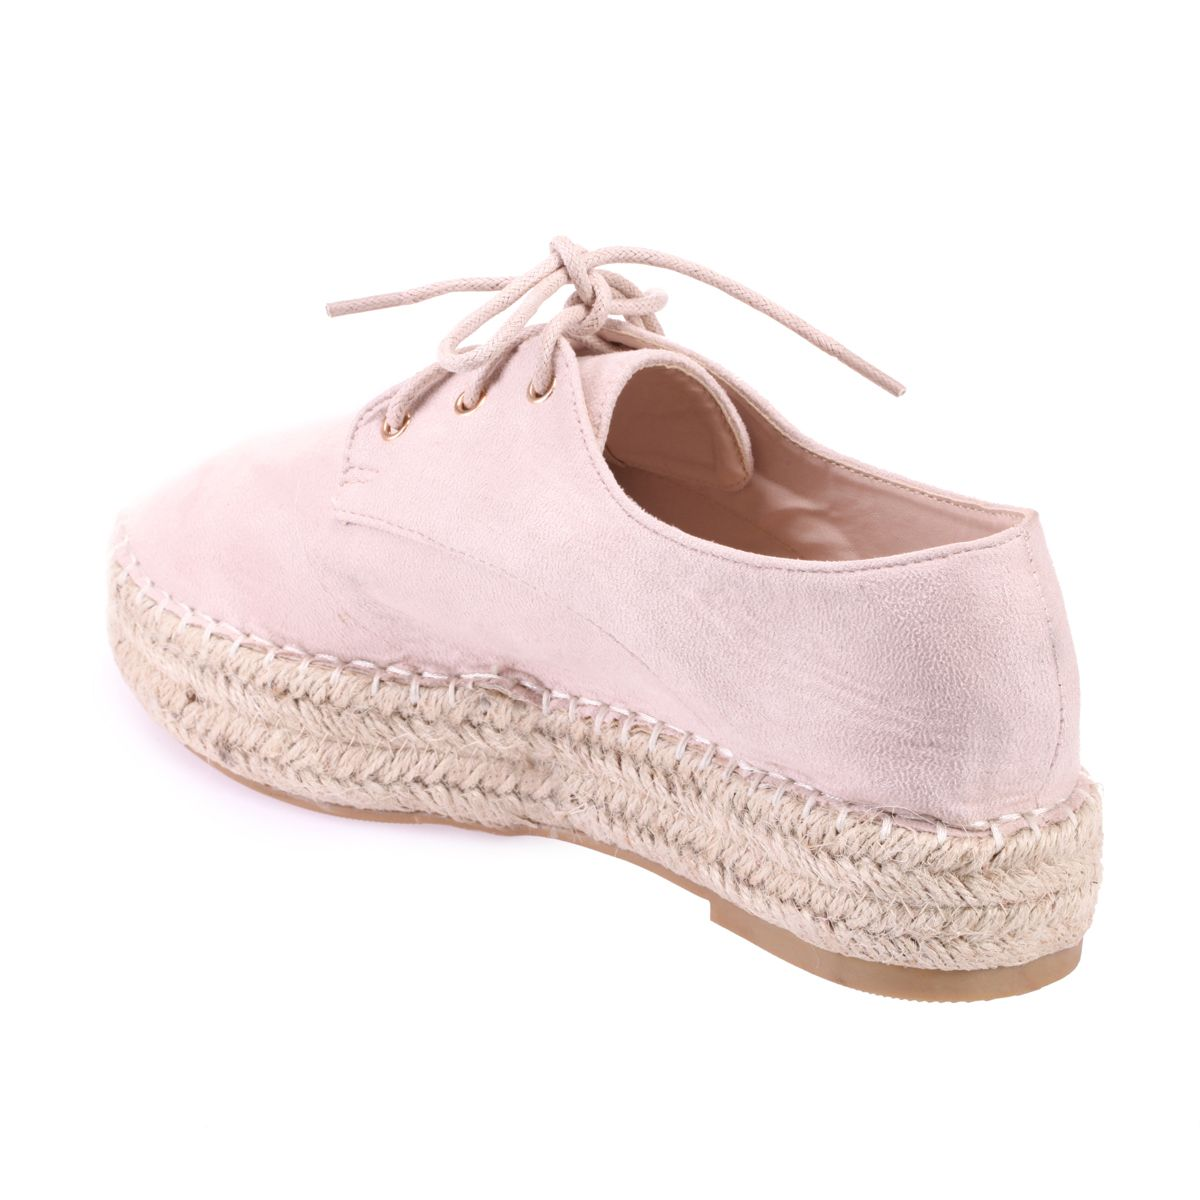 Derbies nude type espadrilles